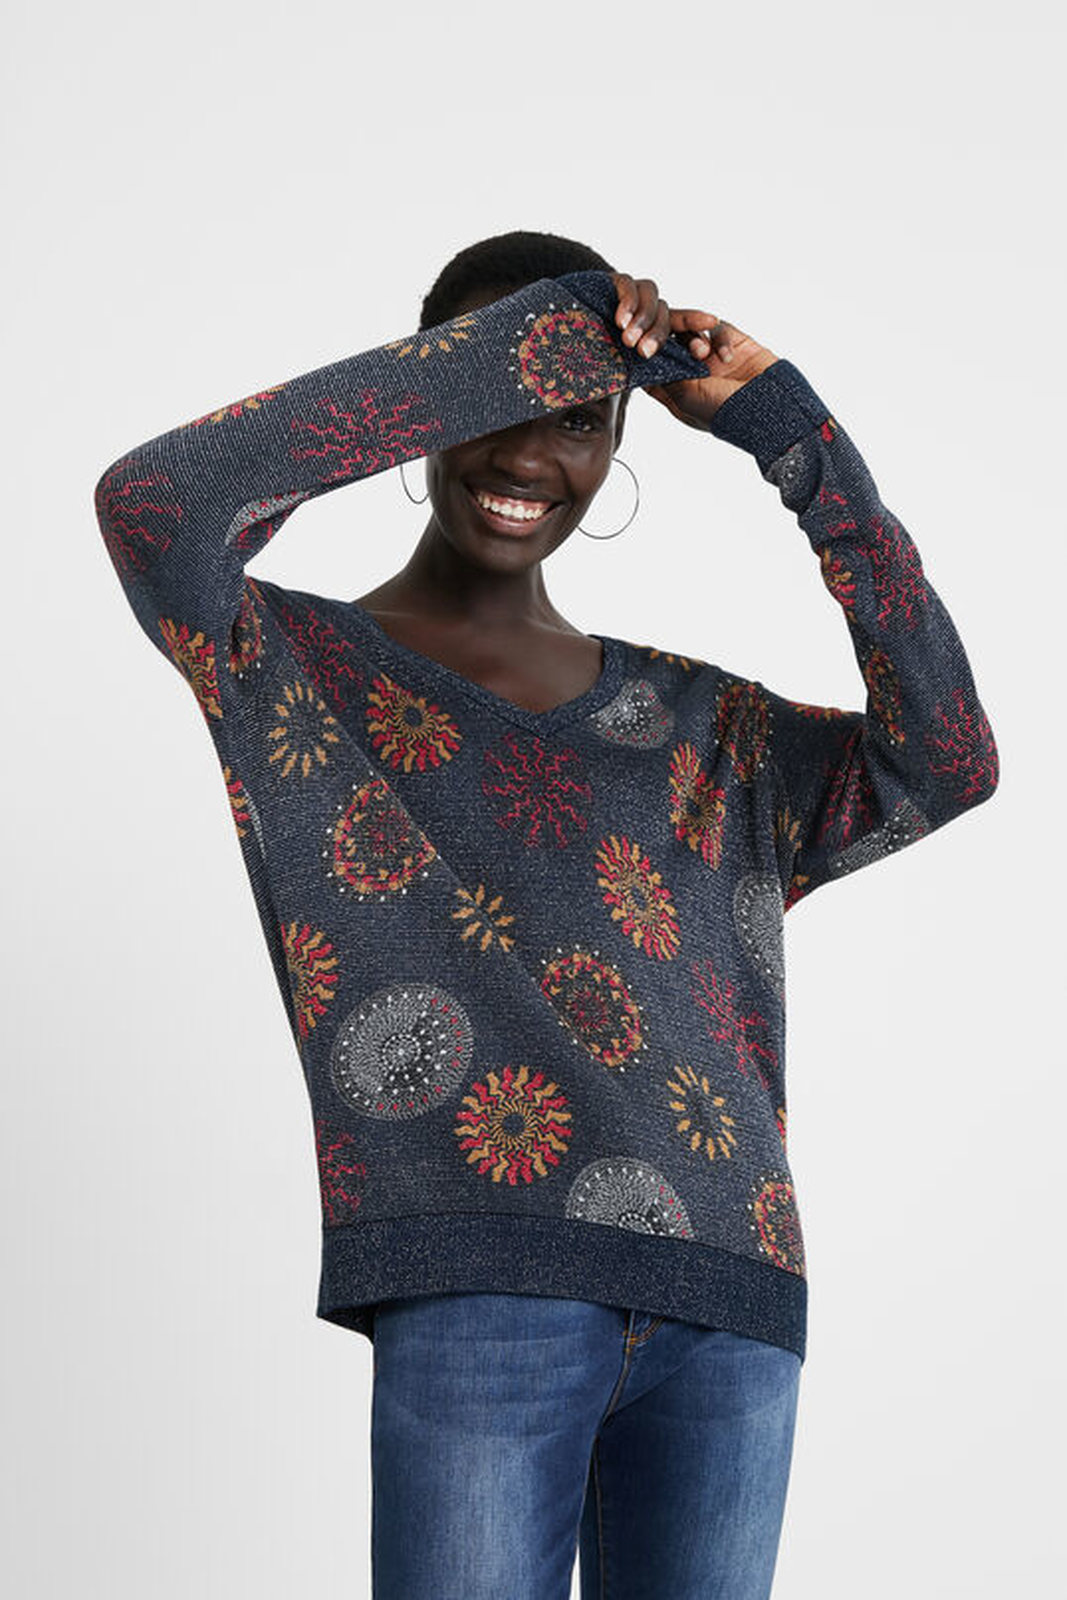 Desigual multicolor sweater Jers Mesina